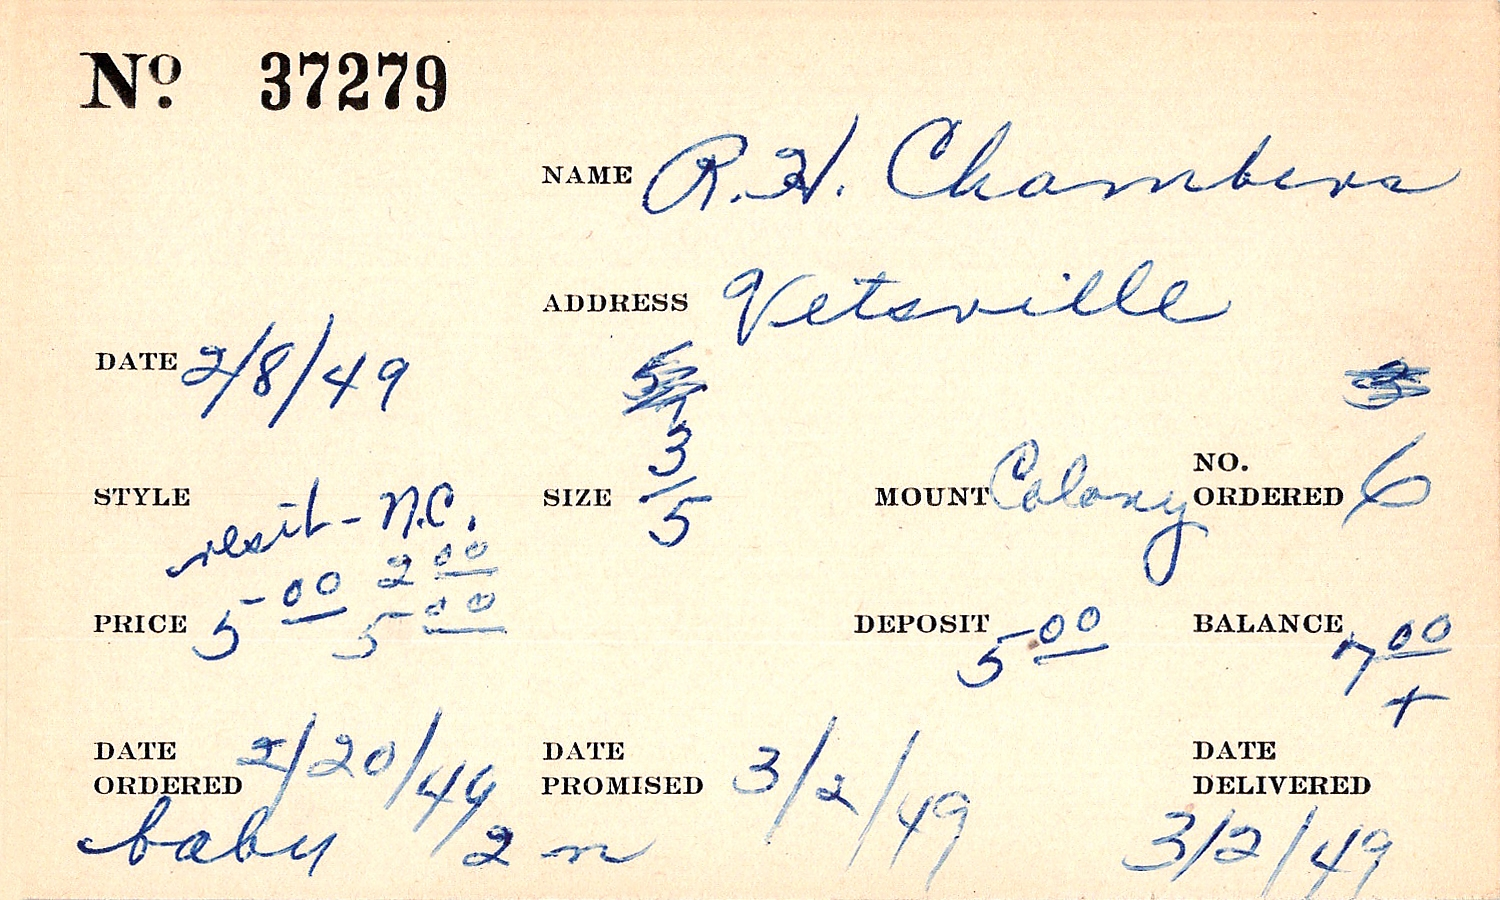 Index card for R. H. Chambers